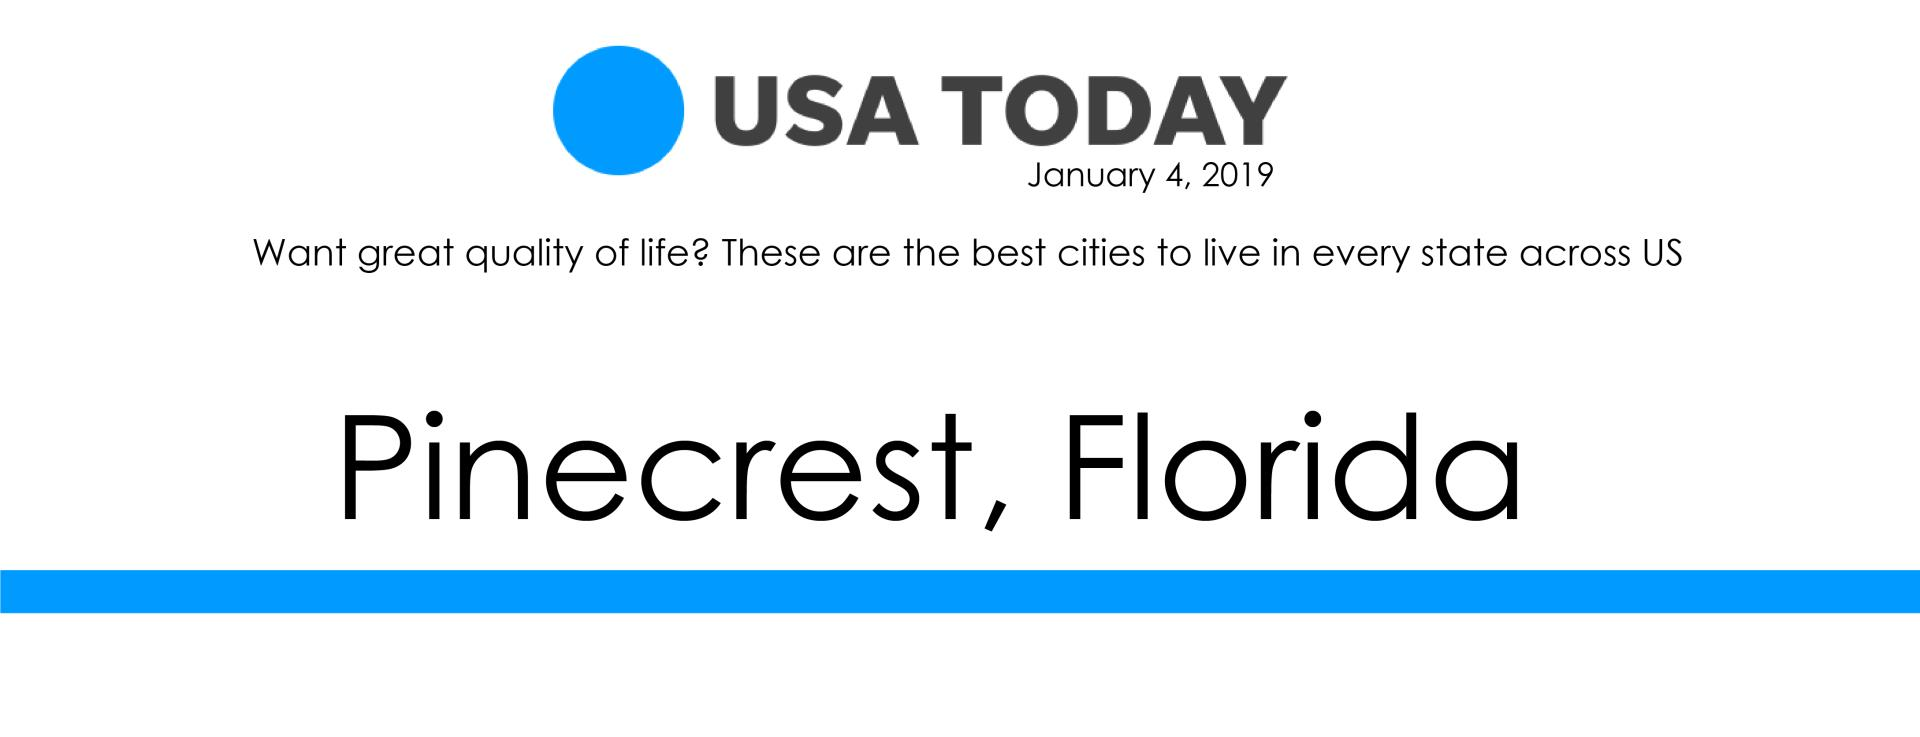 USA Today - Pinecrest Best City to Live in Florida